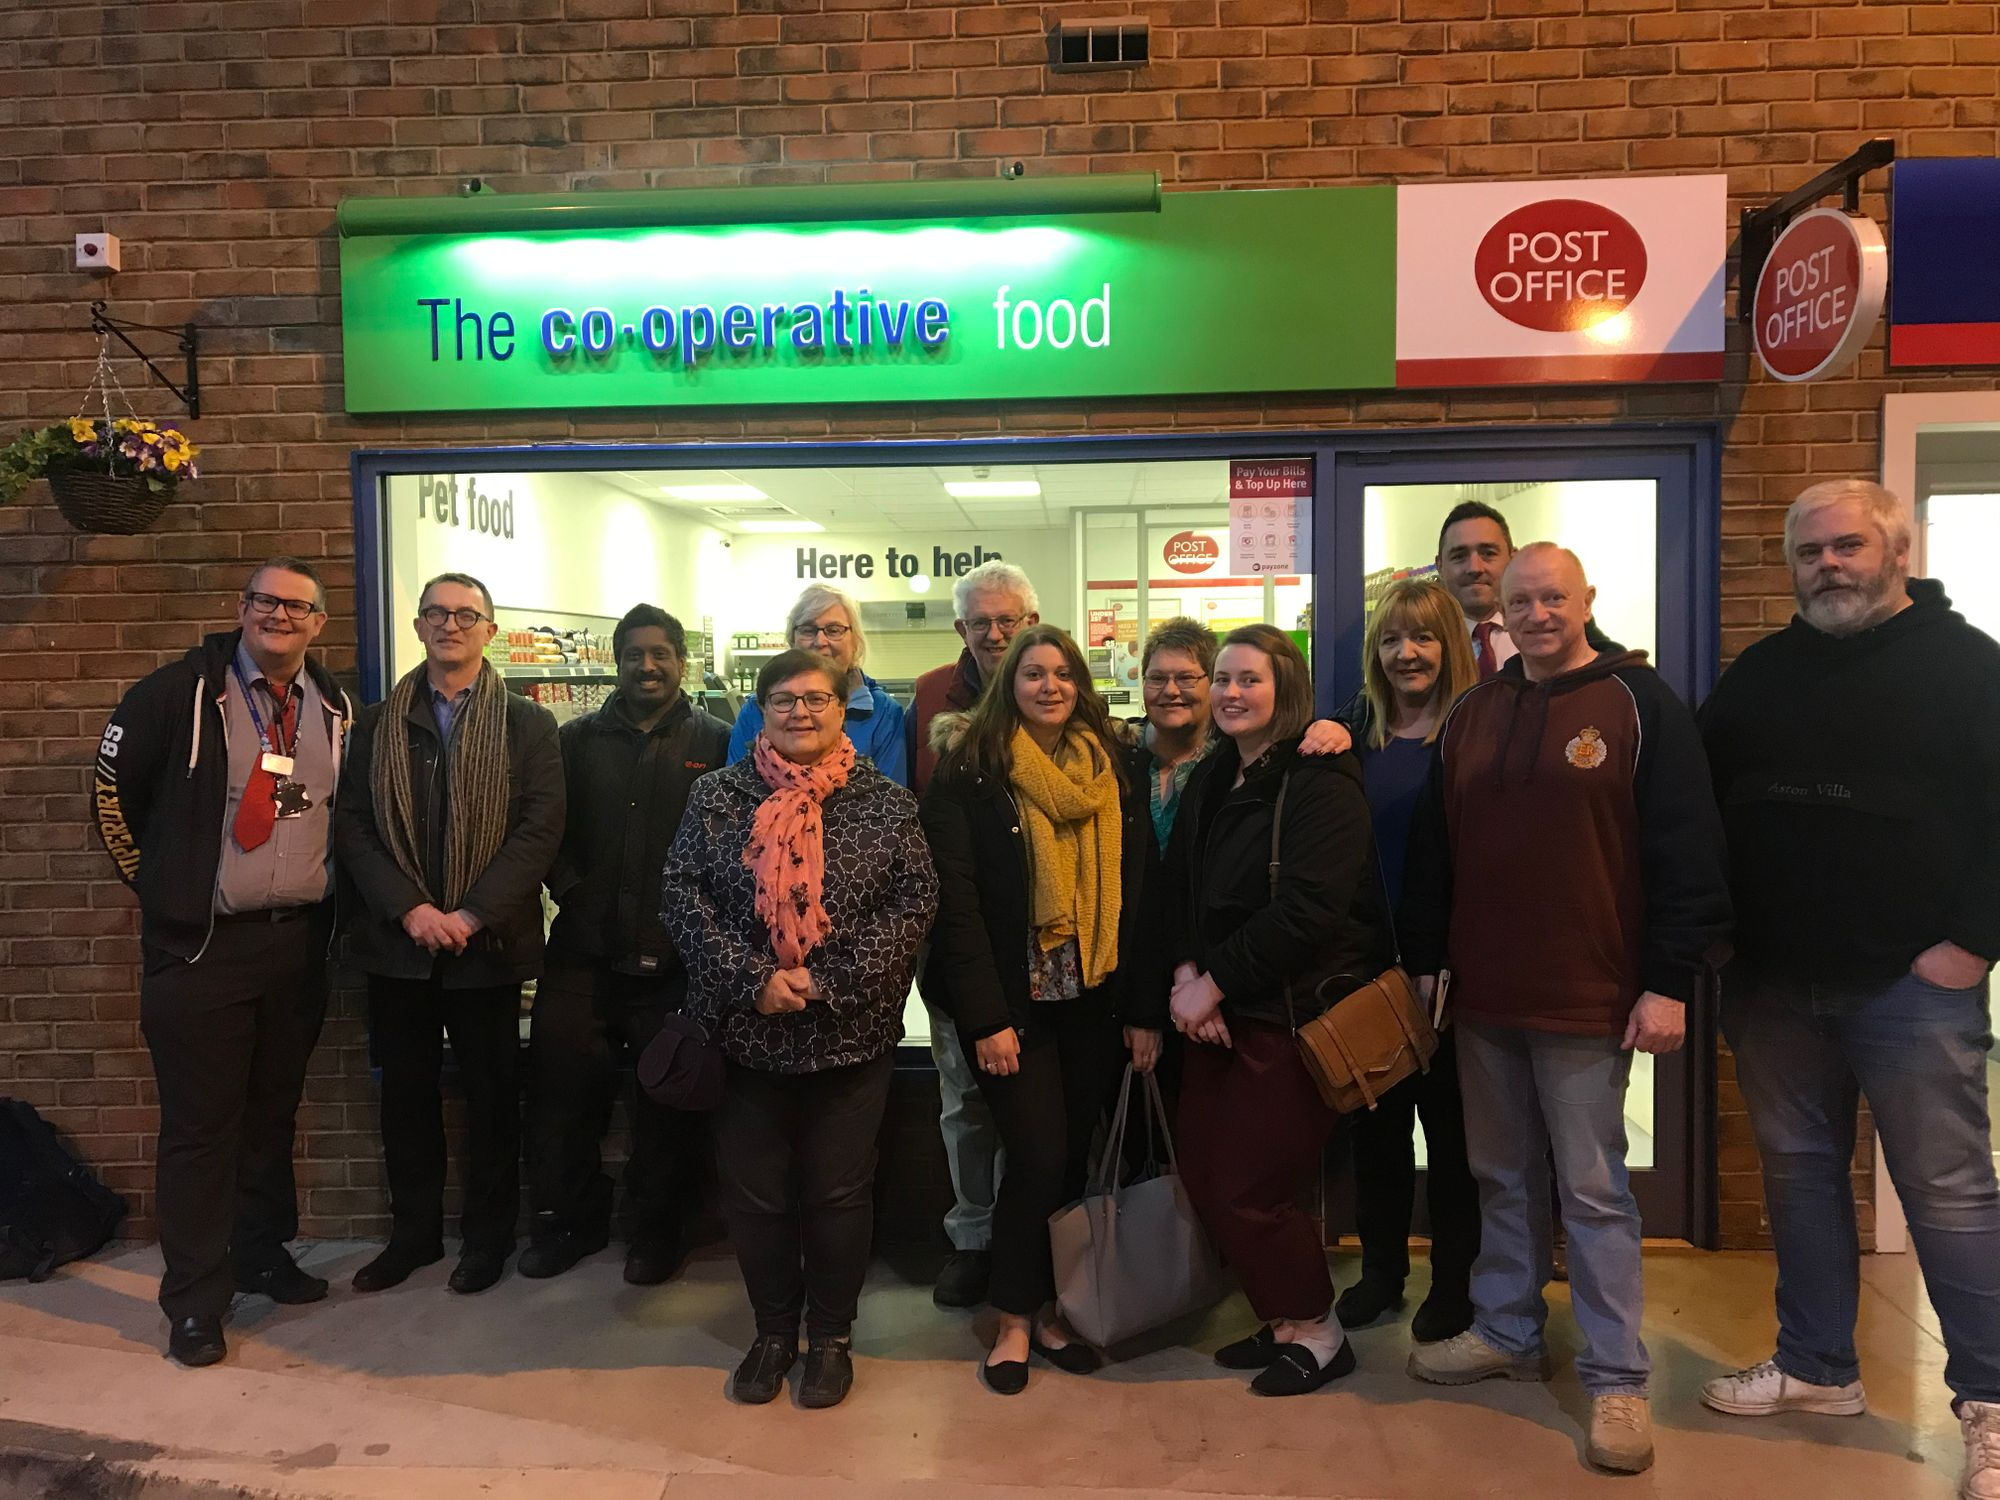 Elected Central England Co-operative Members meet in Birmingham